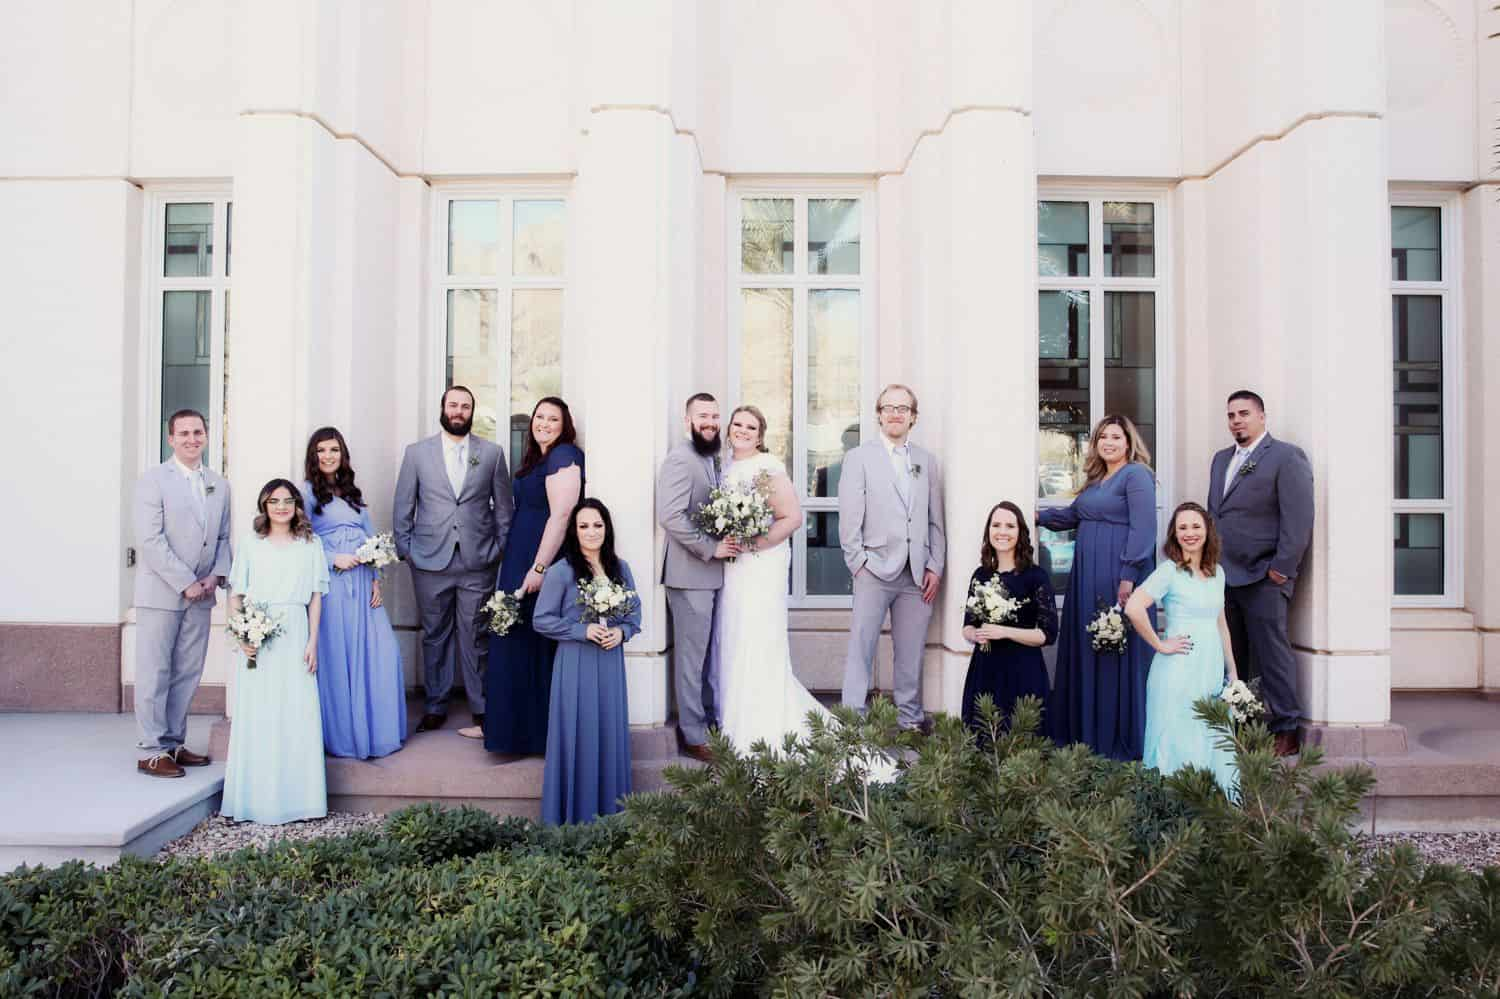 A blue and grey-dressed wedding party stands on the front porch of an antebellum mansion.